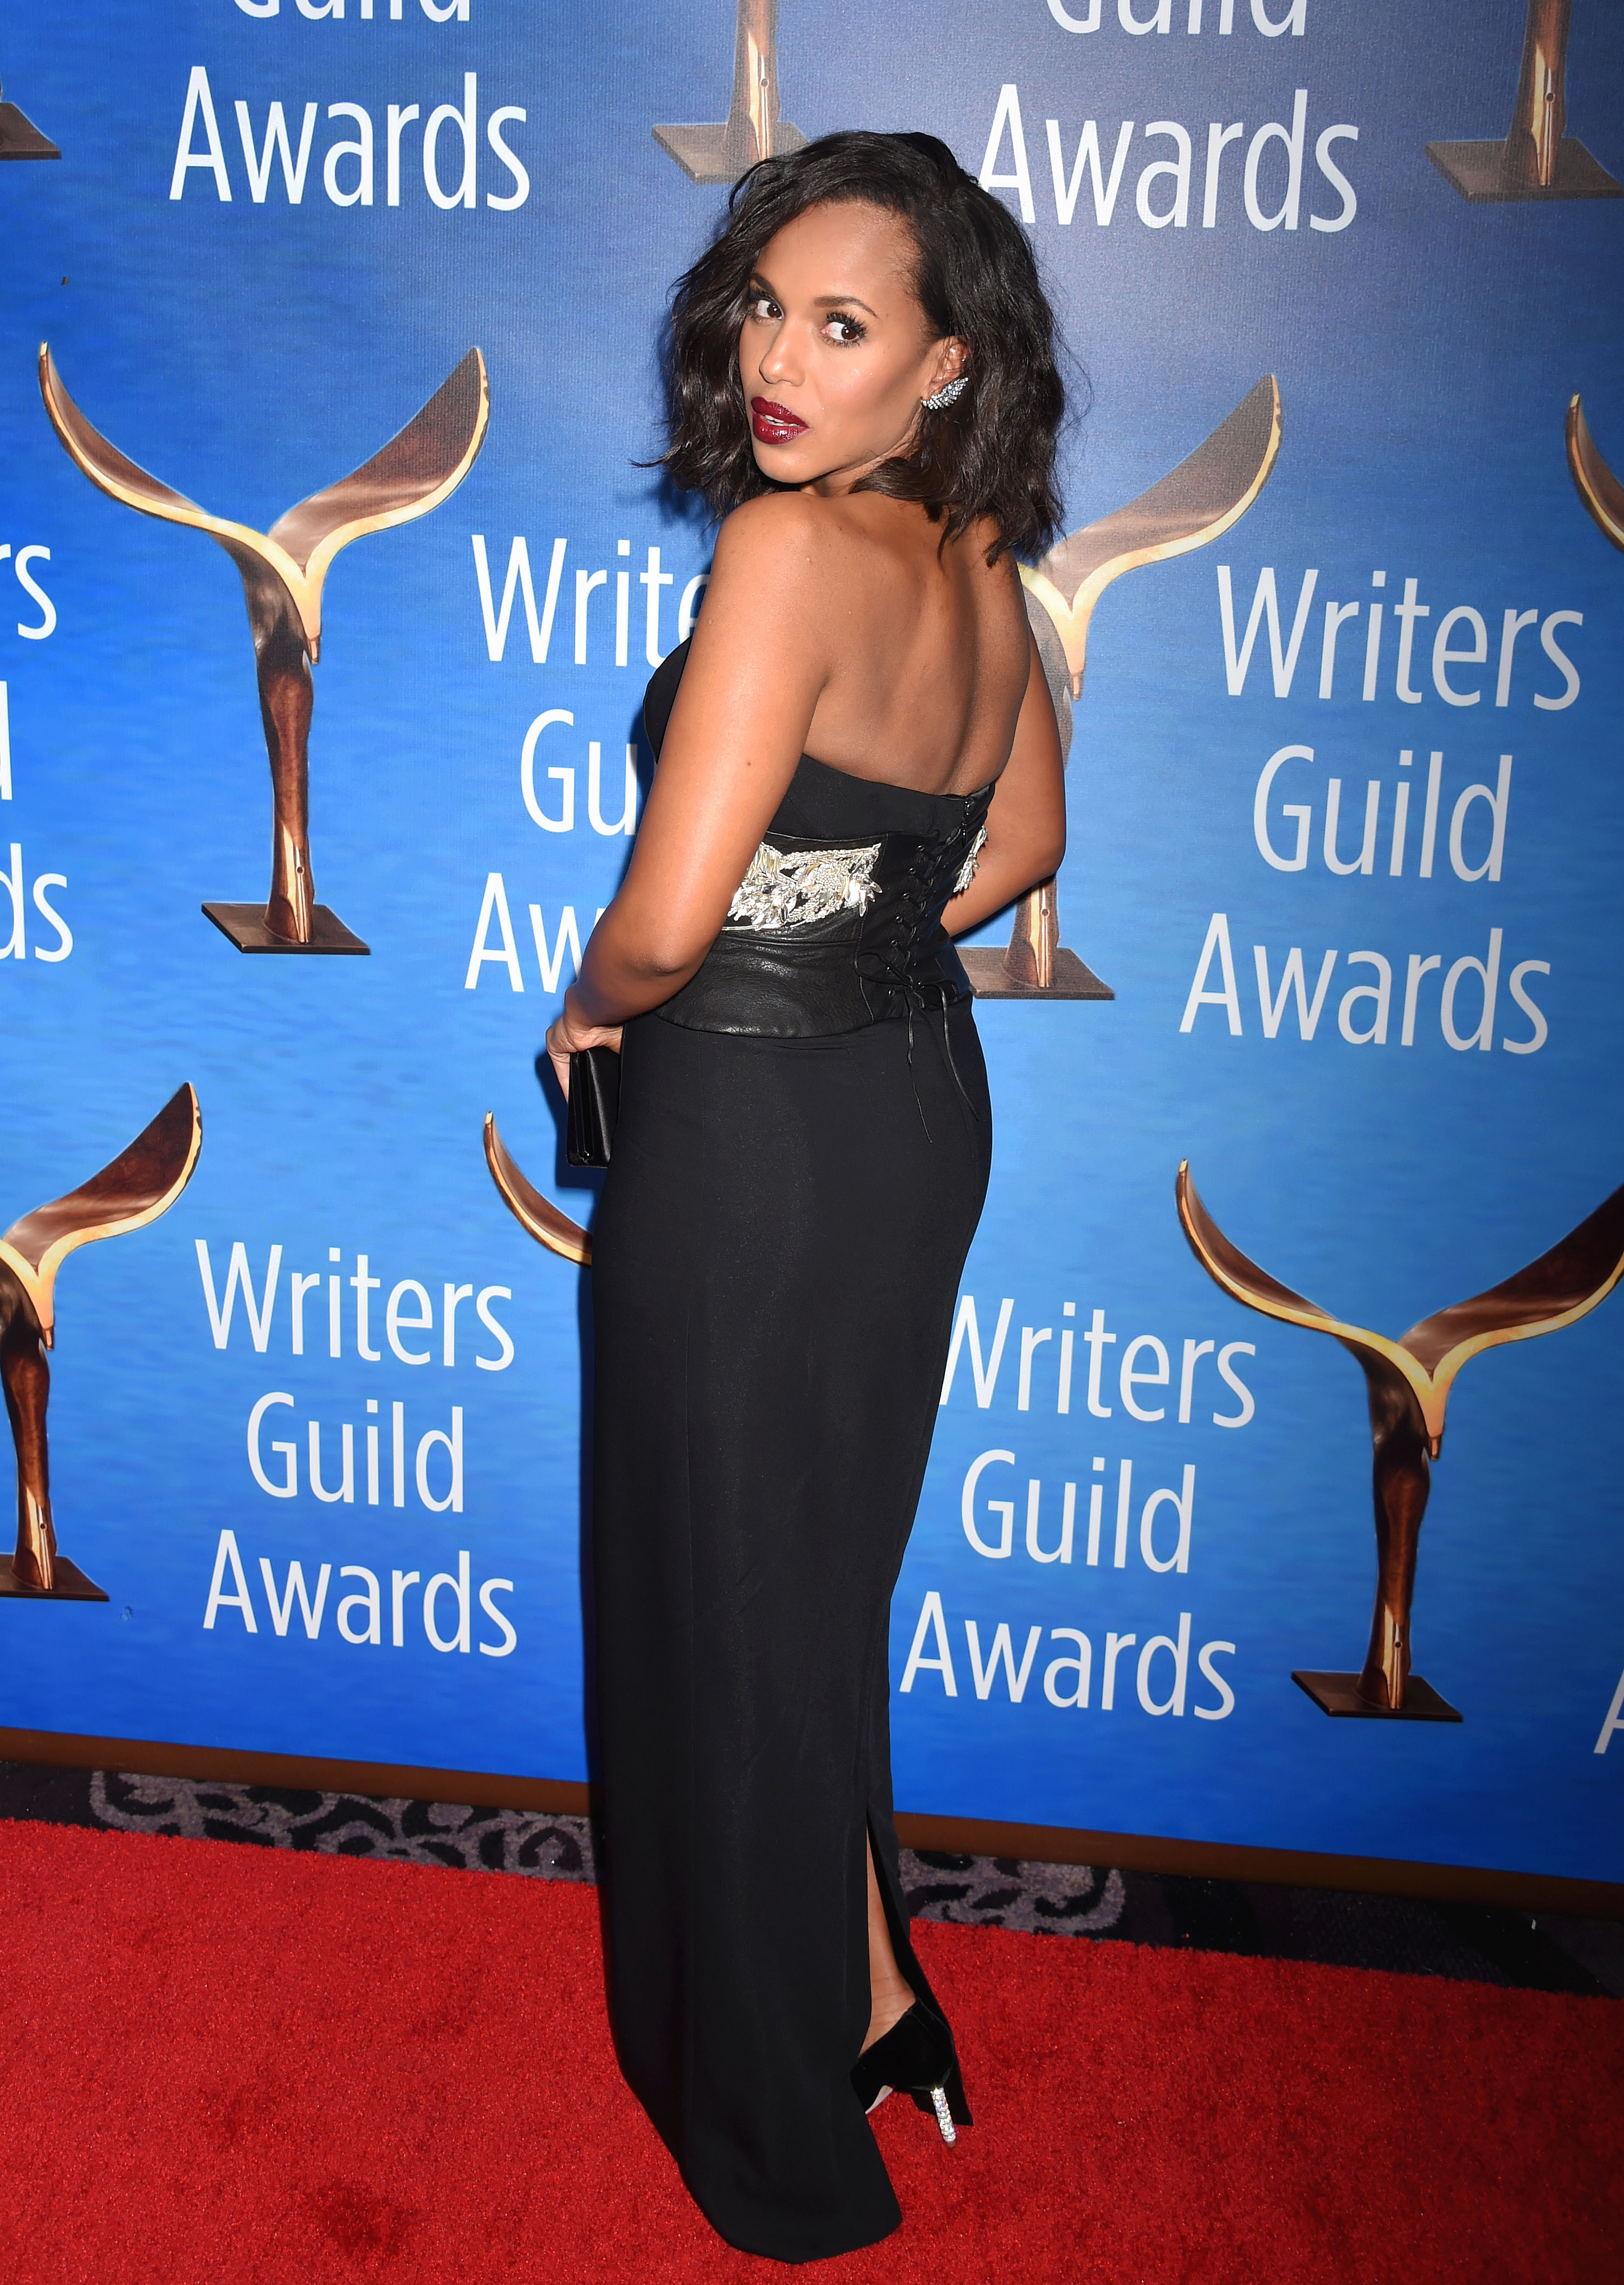 2017 Writers Guild Awards L.A. Ceremony - Arrivals